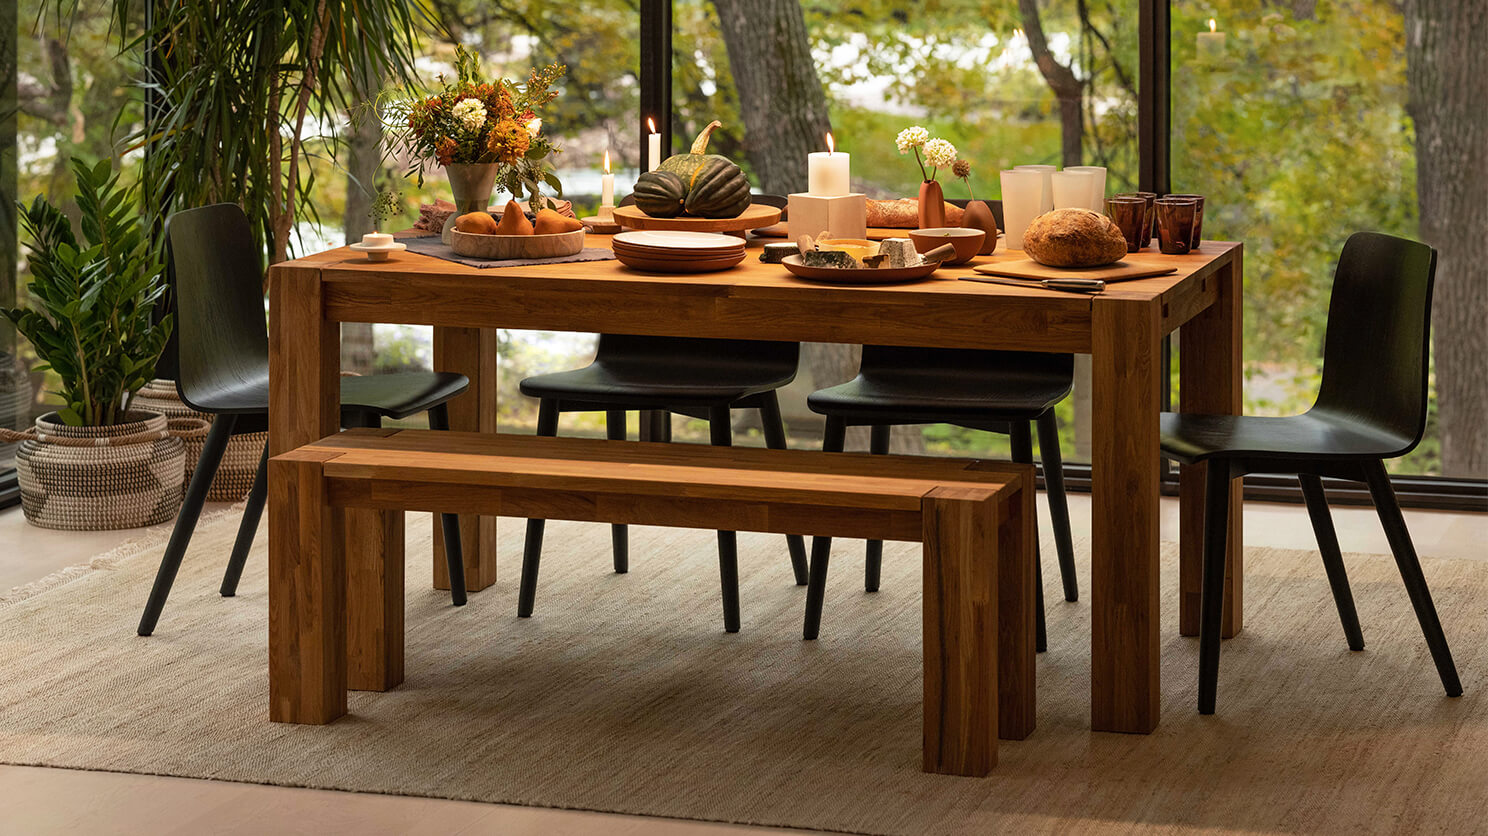 Harvest Dining Table Modern Rustic